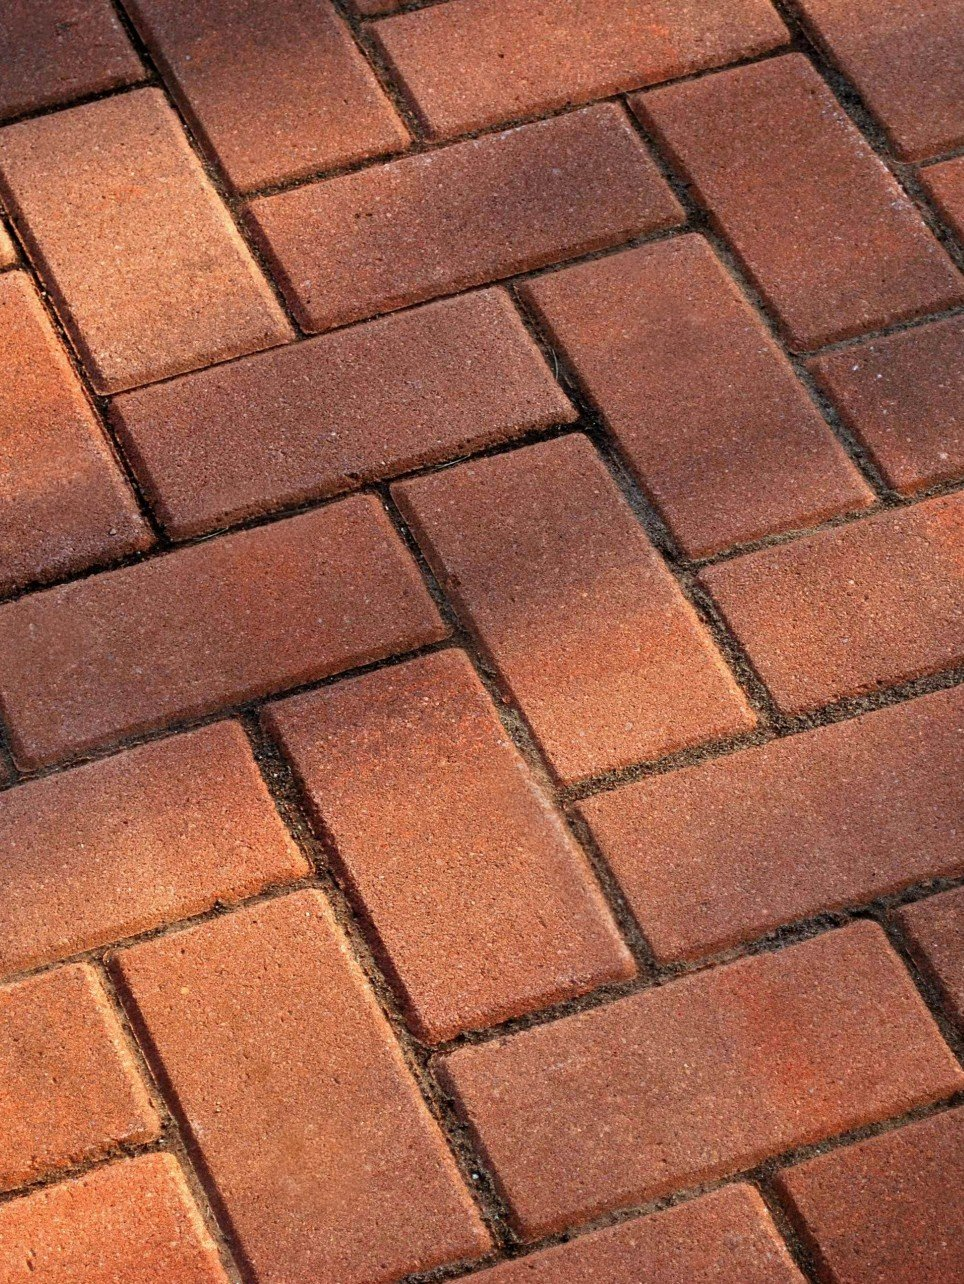 Block Paving Companies Shard End